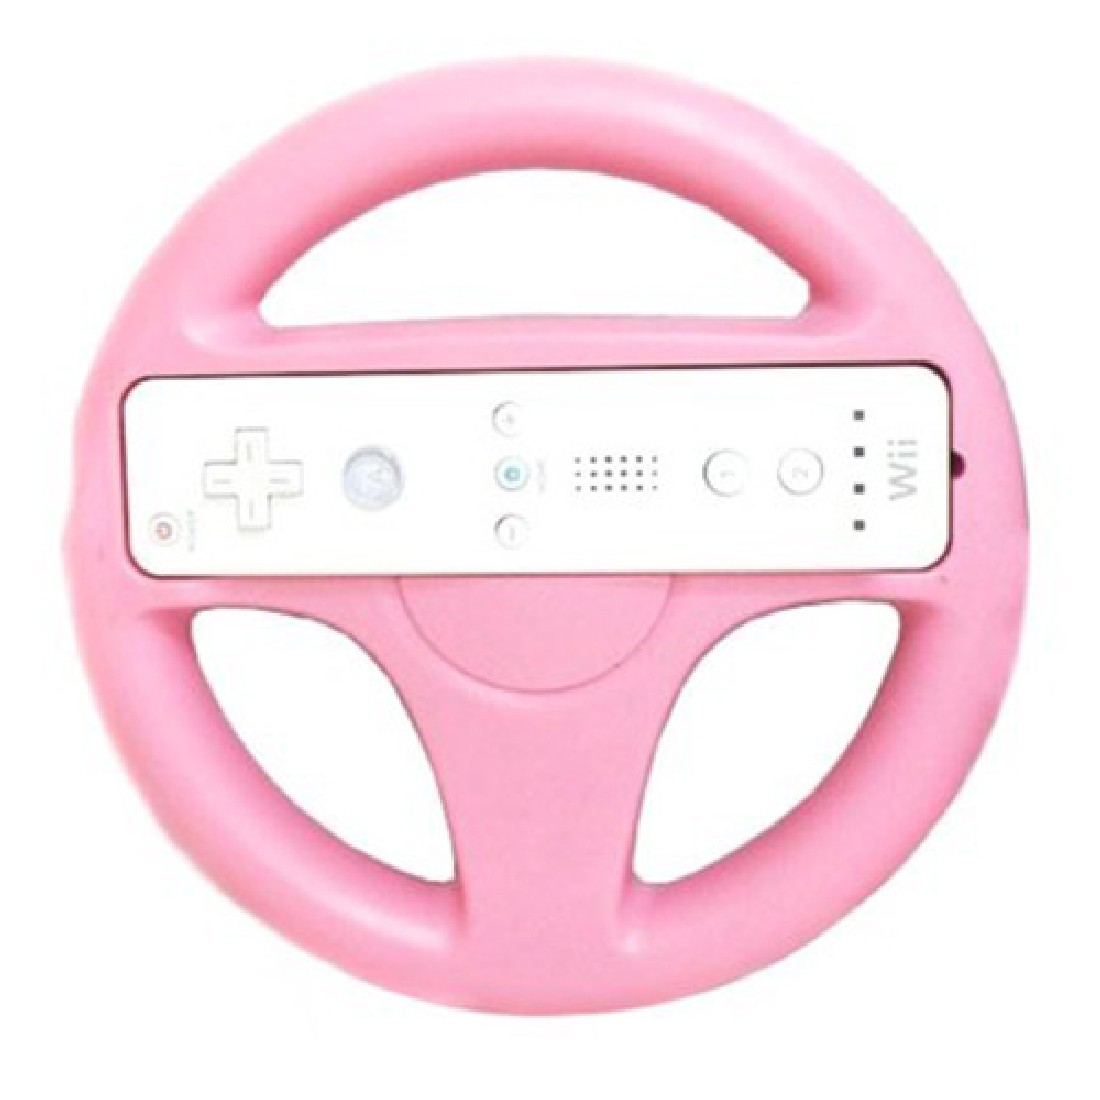 New Fashion Steering Wheel For Nintendo Wii Mario Kart Remote Controller Racing Games Pink